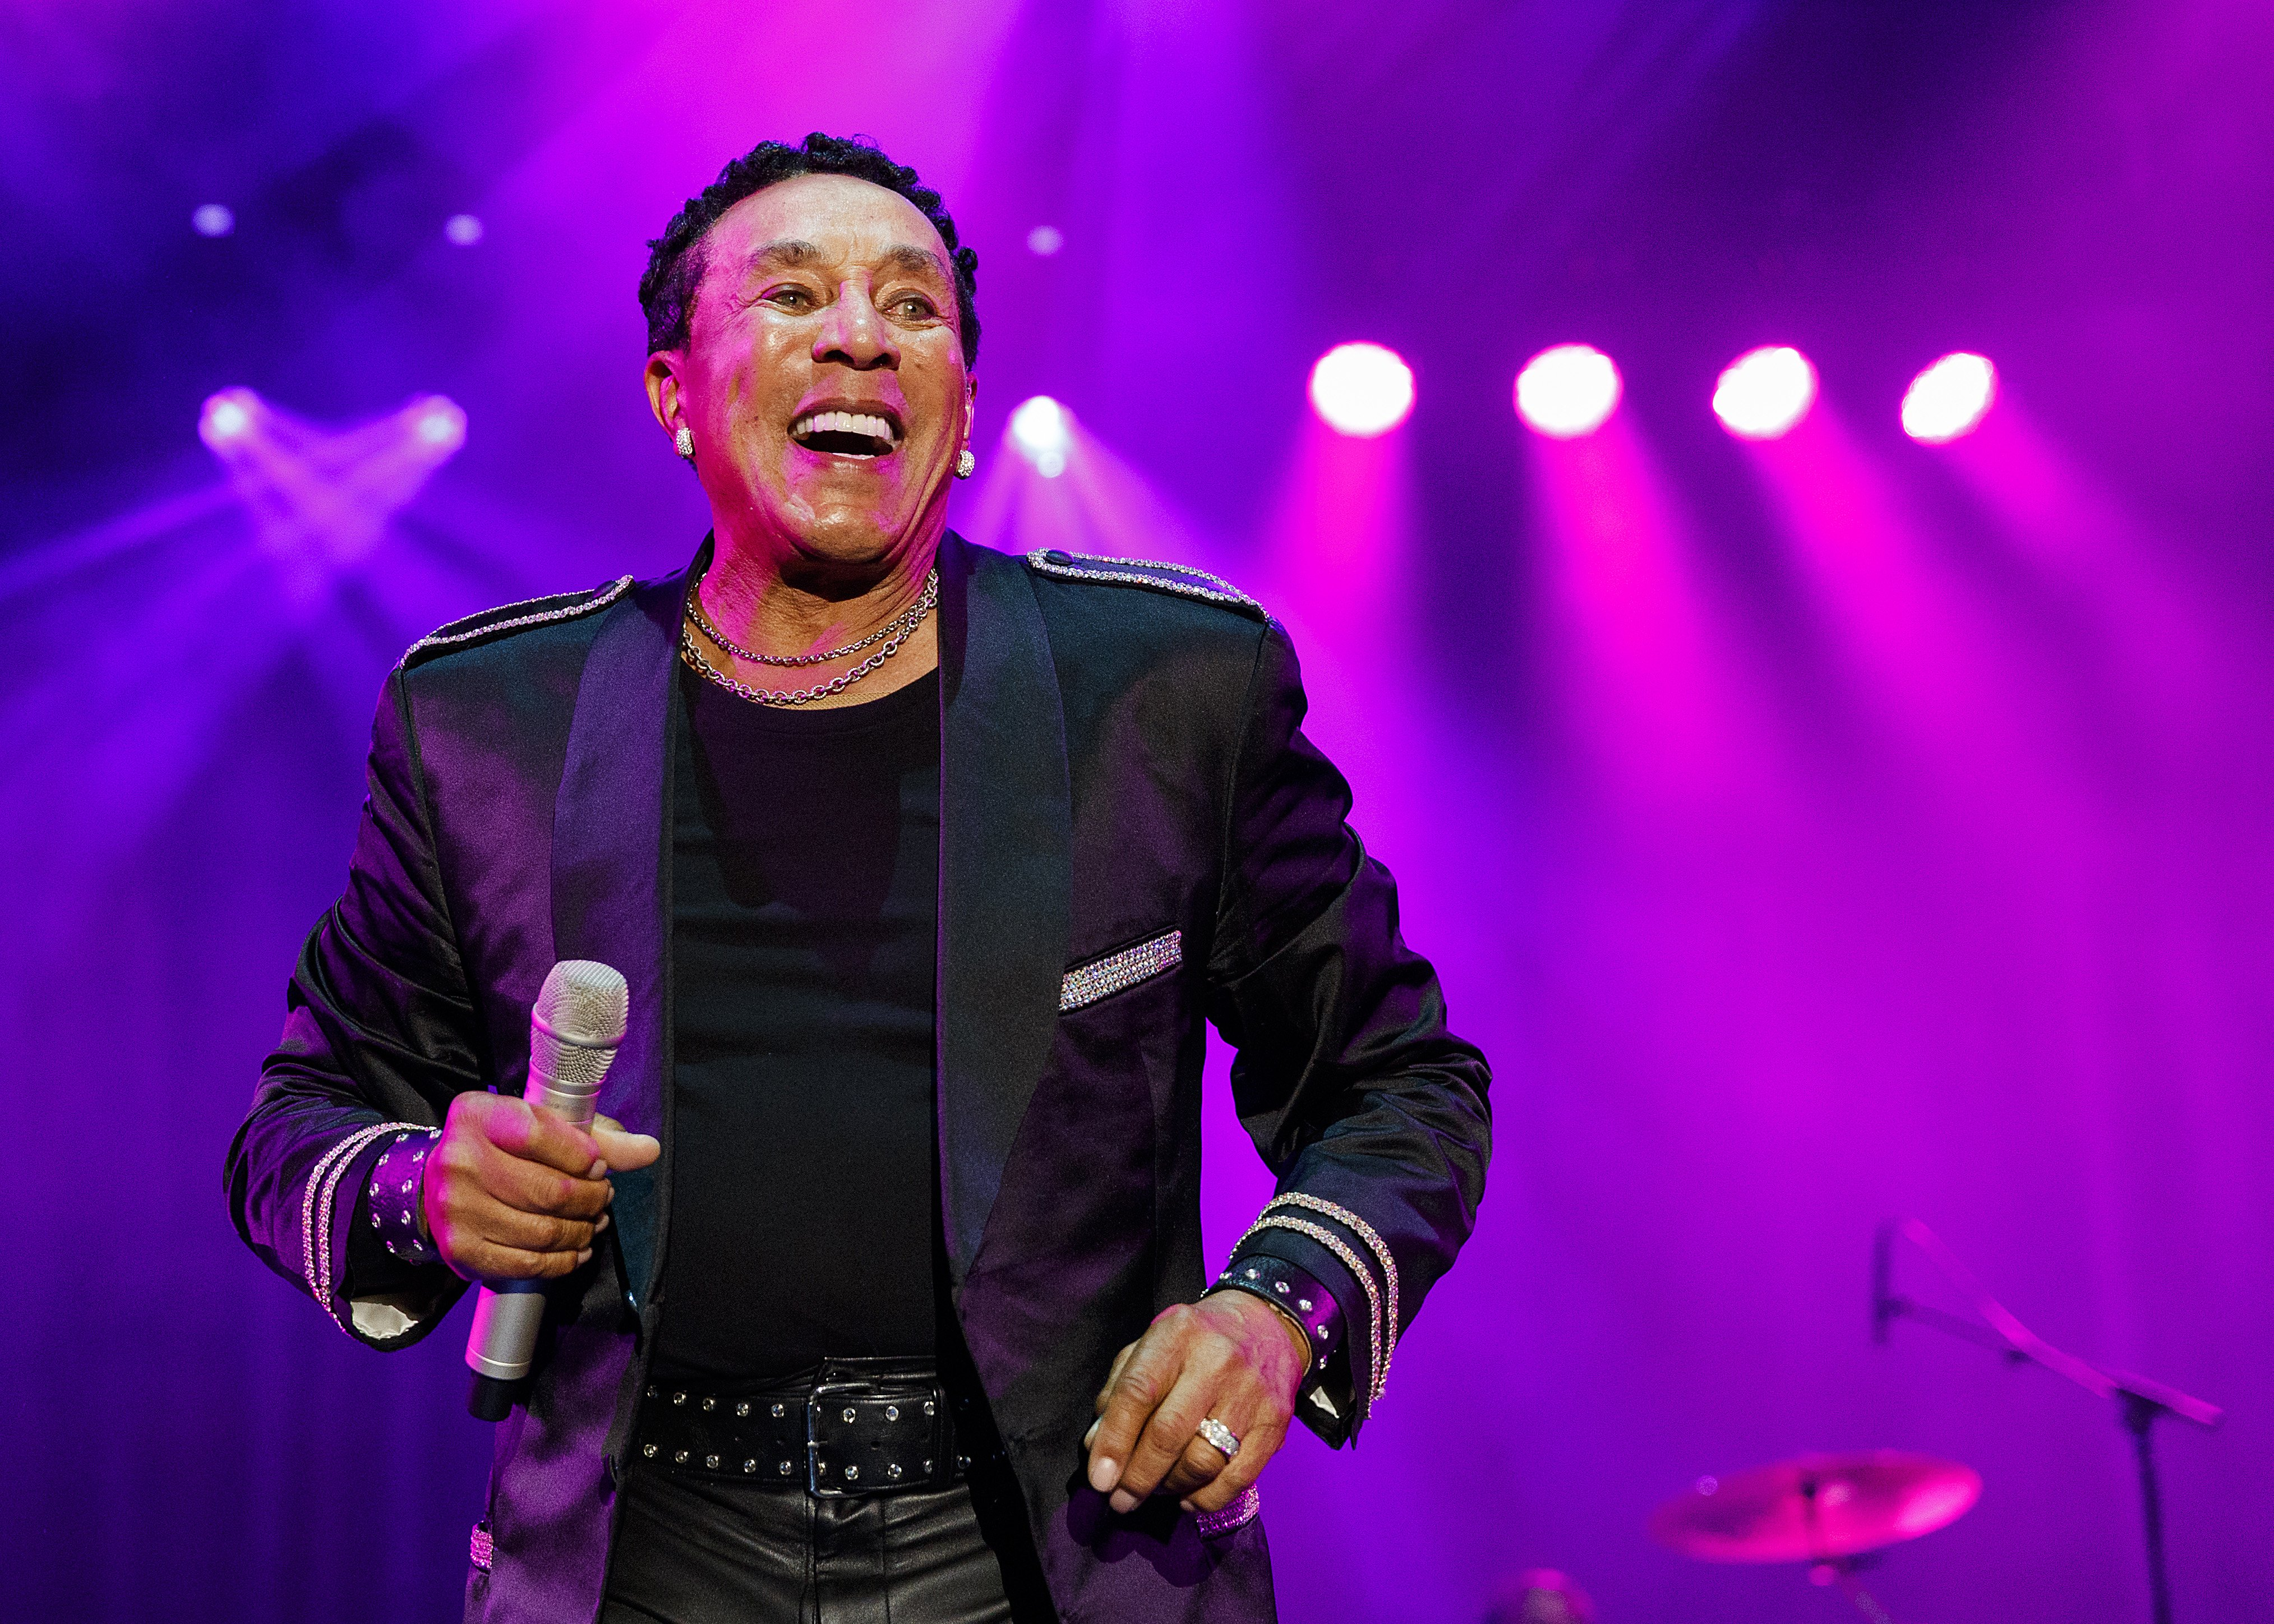 Smokey Robinson performing at the Summer Night Concerts on August 23, 2019 in Vancouver, Canada. | Source: Getty Images